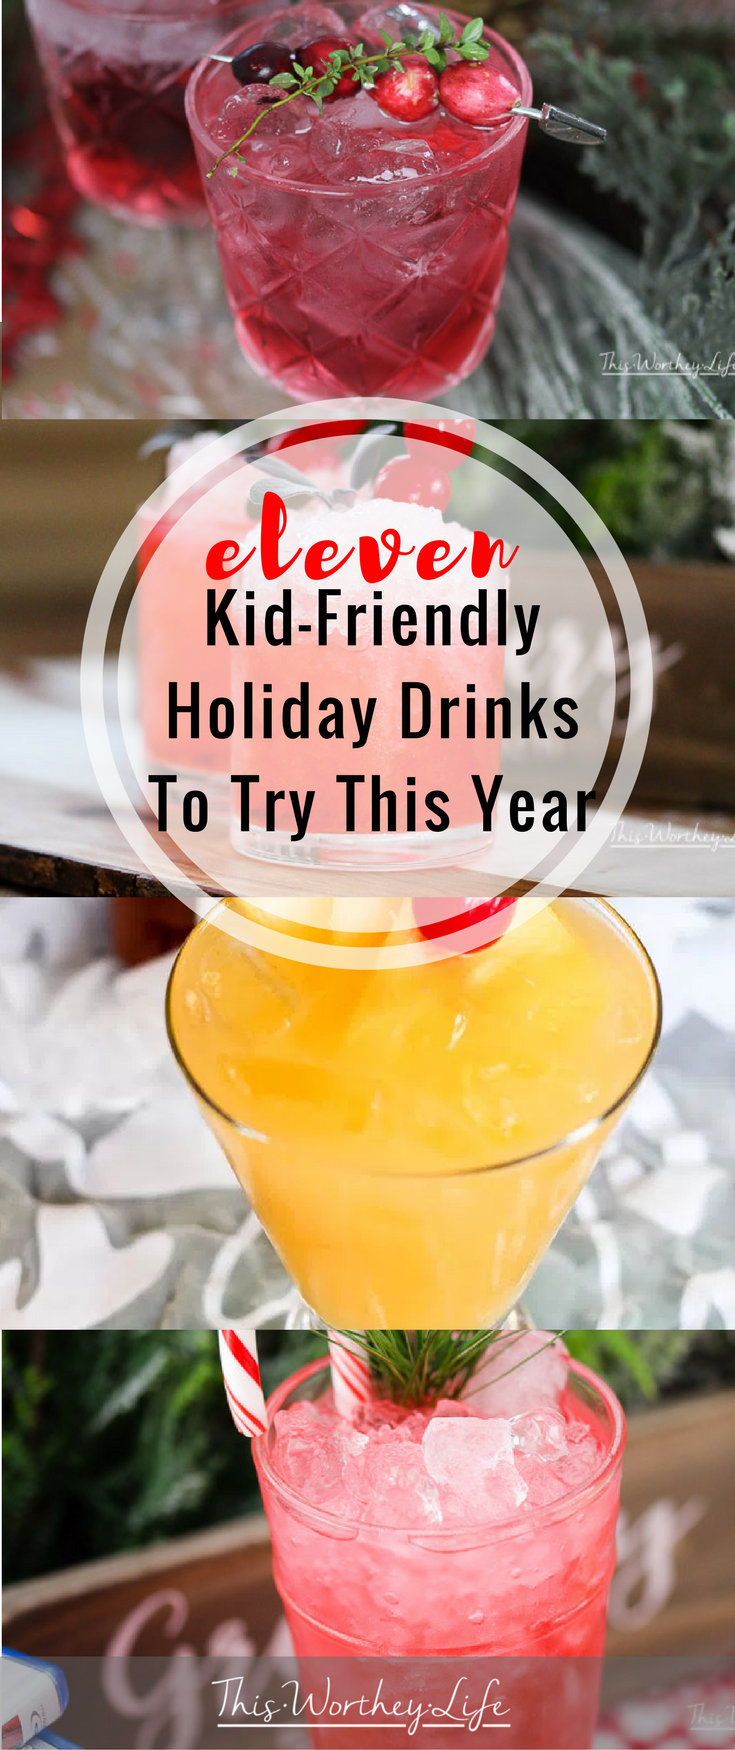 Get kid-friendly holiday drink recipes to try this season. Perfect for Thanksgiving, Christmas and New Year's, our mocktail ideas are perfect for kids and adults. Get 11 Kid-Friendly Drink Ideas on the blog!